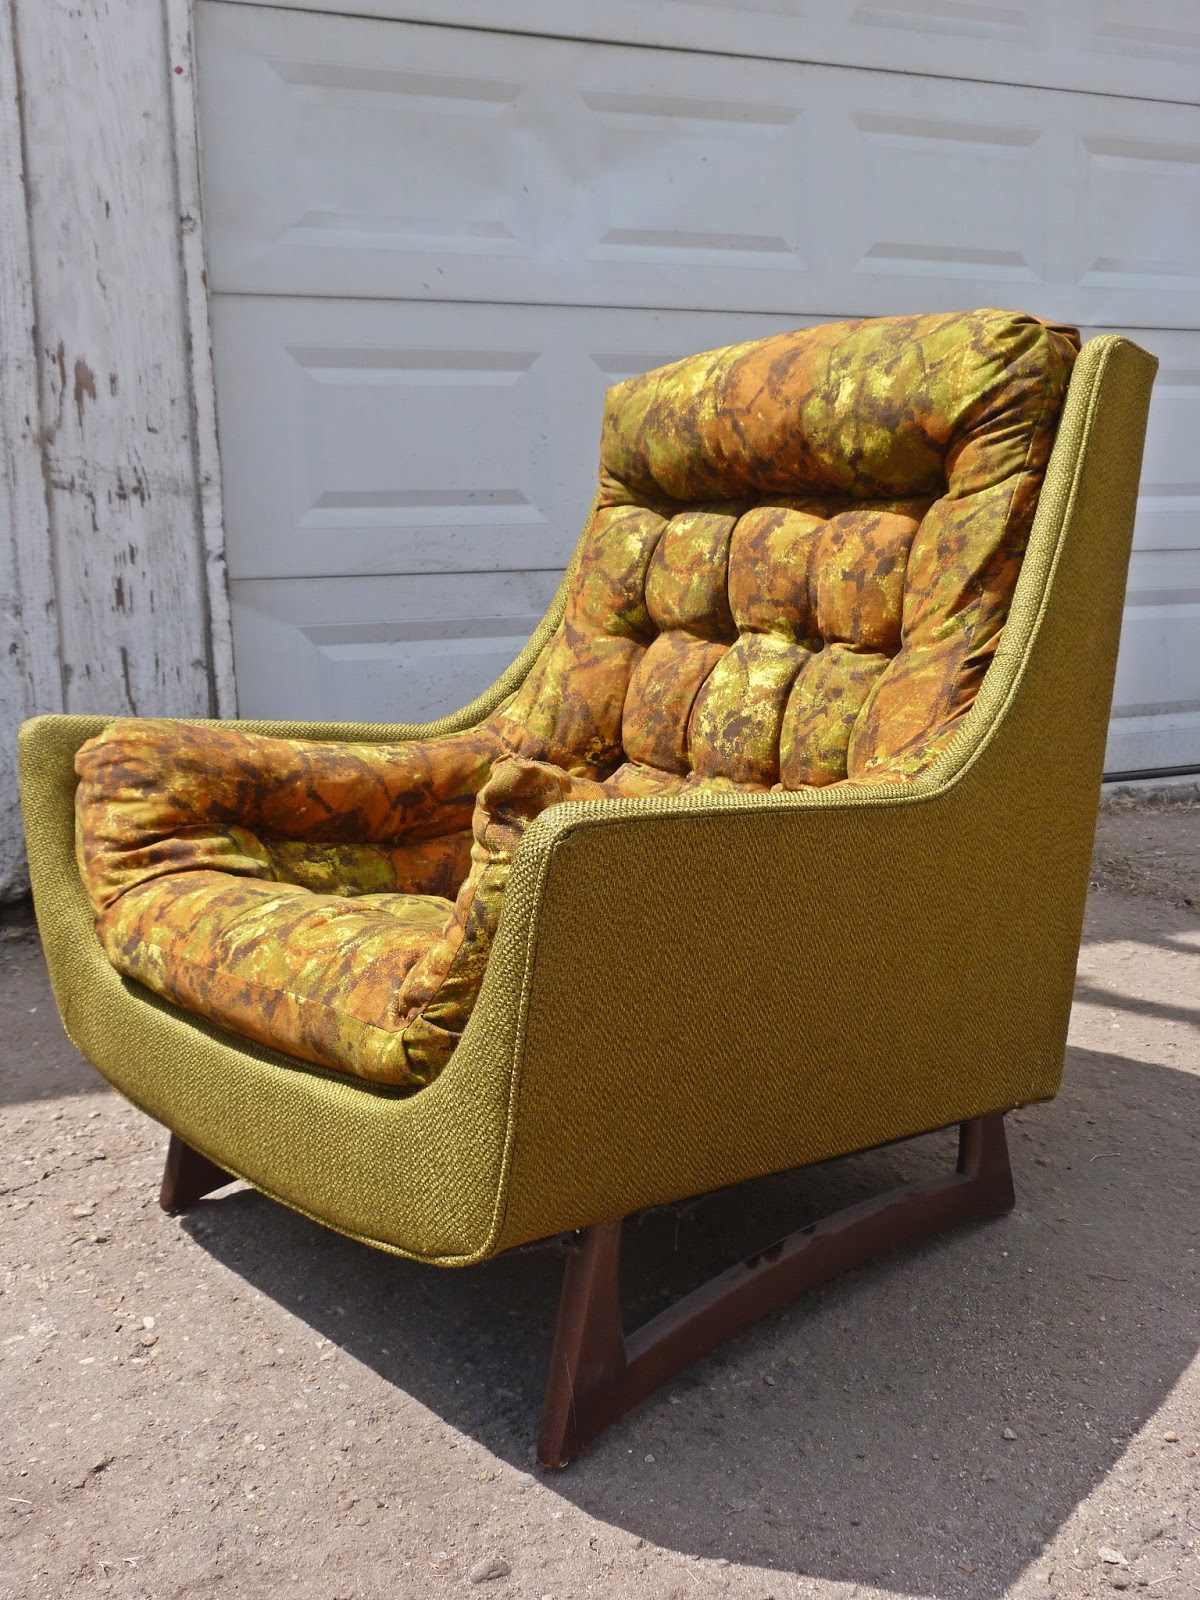 A Matching Chair To The Sectional Sofa Above. This Retro Pearsall Chair Has  Great Bones. The Fabric Is Extremely Unique. If The Color Is Not Right For  You, ...